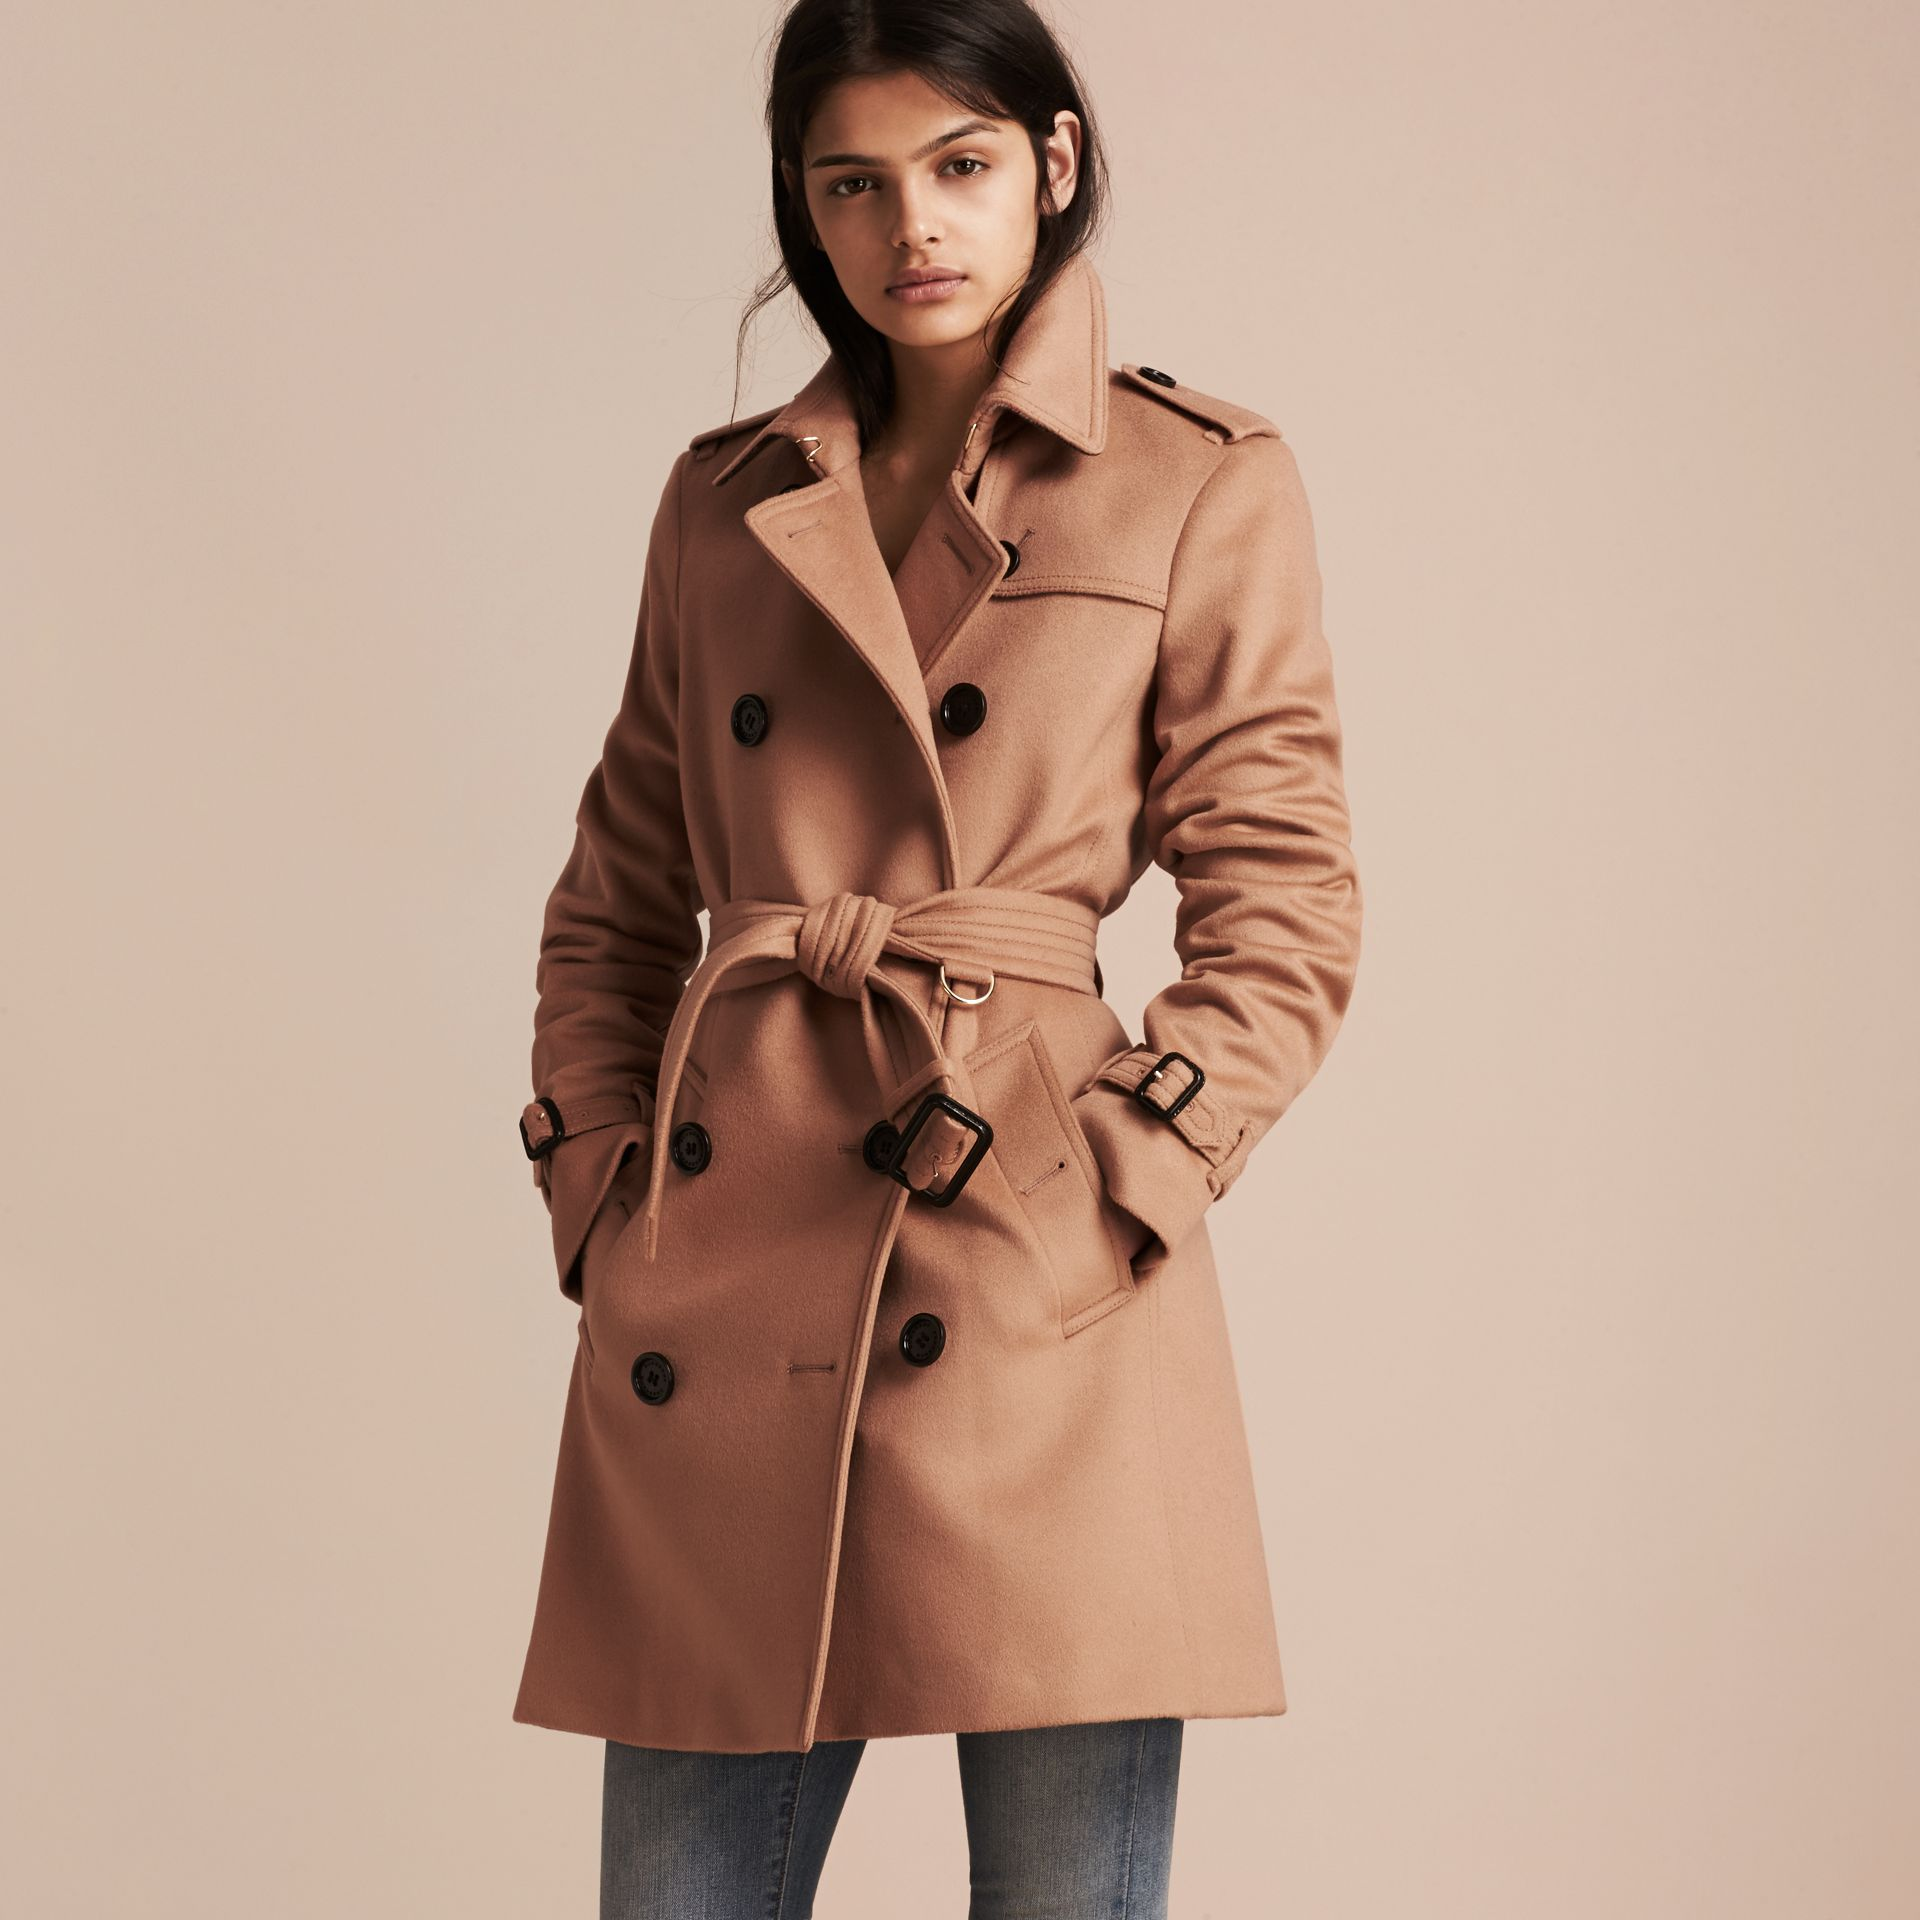 Wool Cashmere Trench Coat in Camel - Women | Burberry - gallery image 7